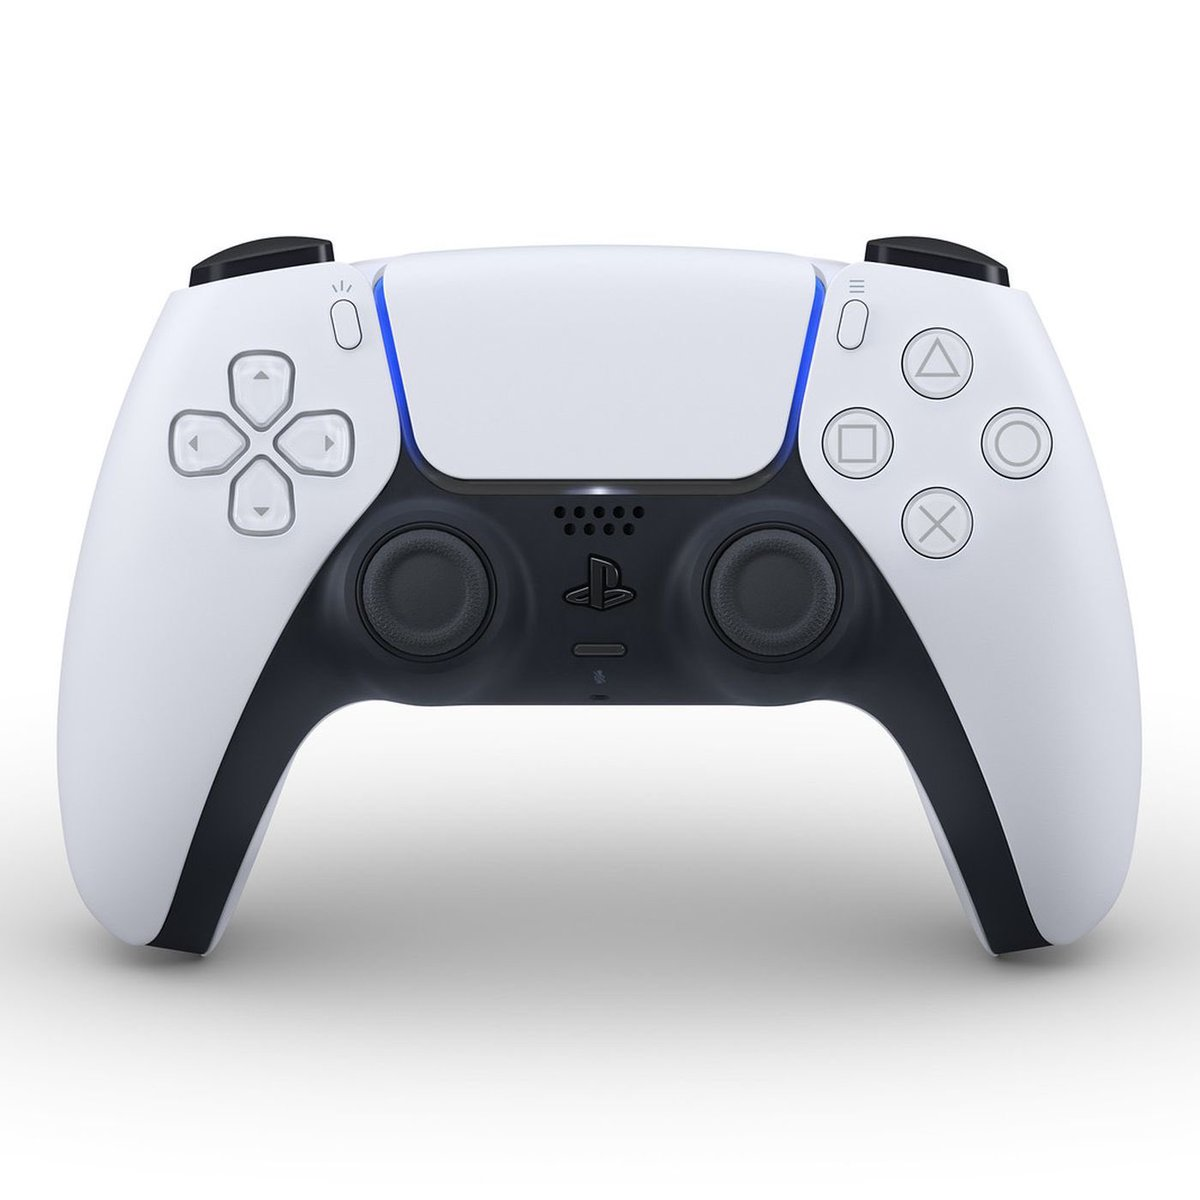 Controller Vr Camera Media remote  #PS5 accessories are still available for preorder don't miss out while stocks last #CheaperWhenYouTradeInAtGAME https://t.co/qX18sPIRzL